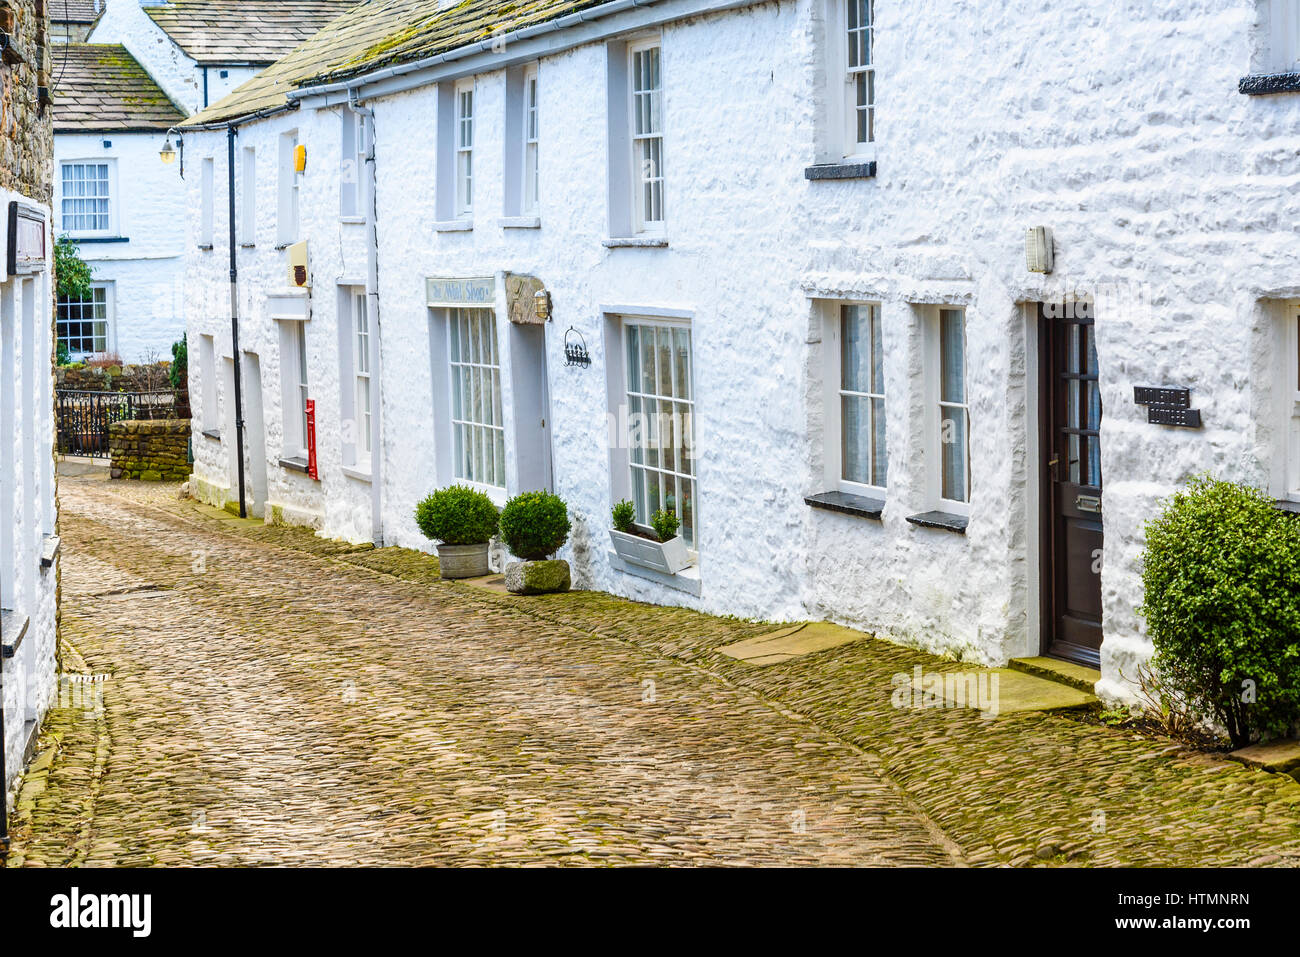 Cobbled street in the village of Dent, Cumbria - Stock Image